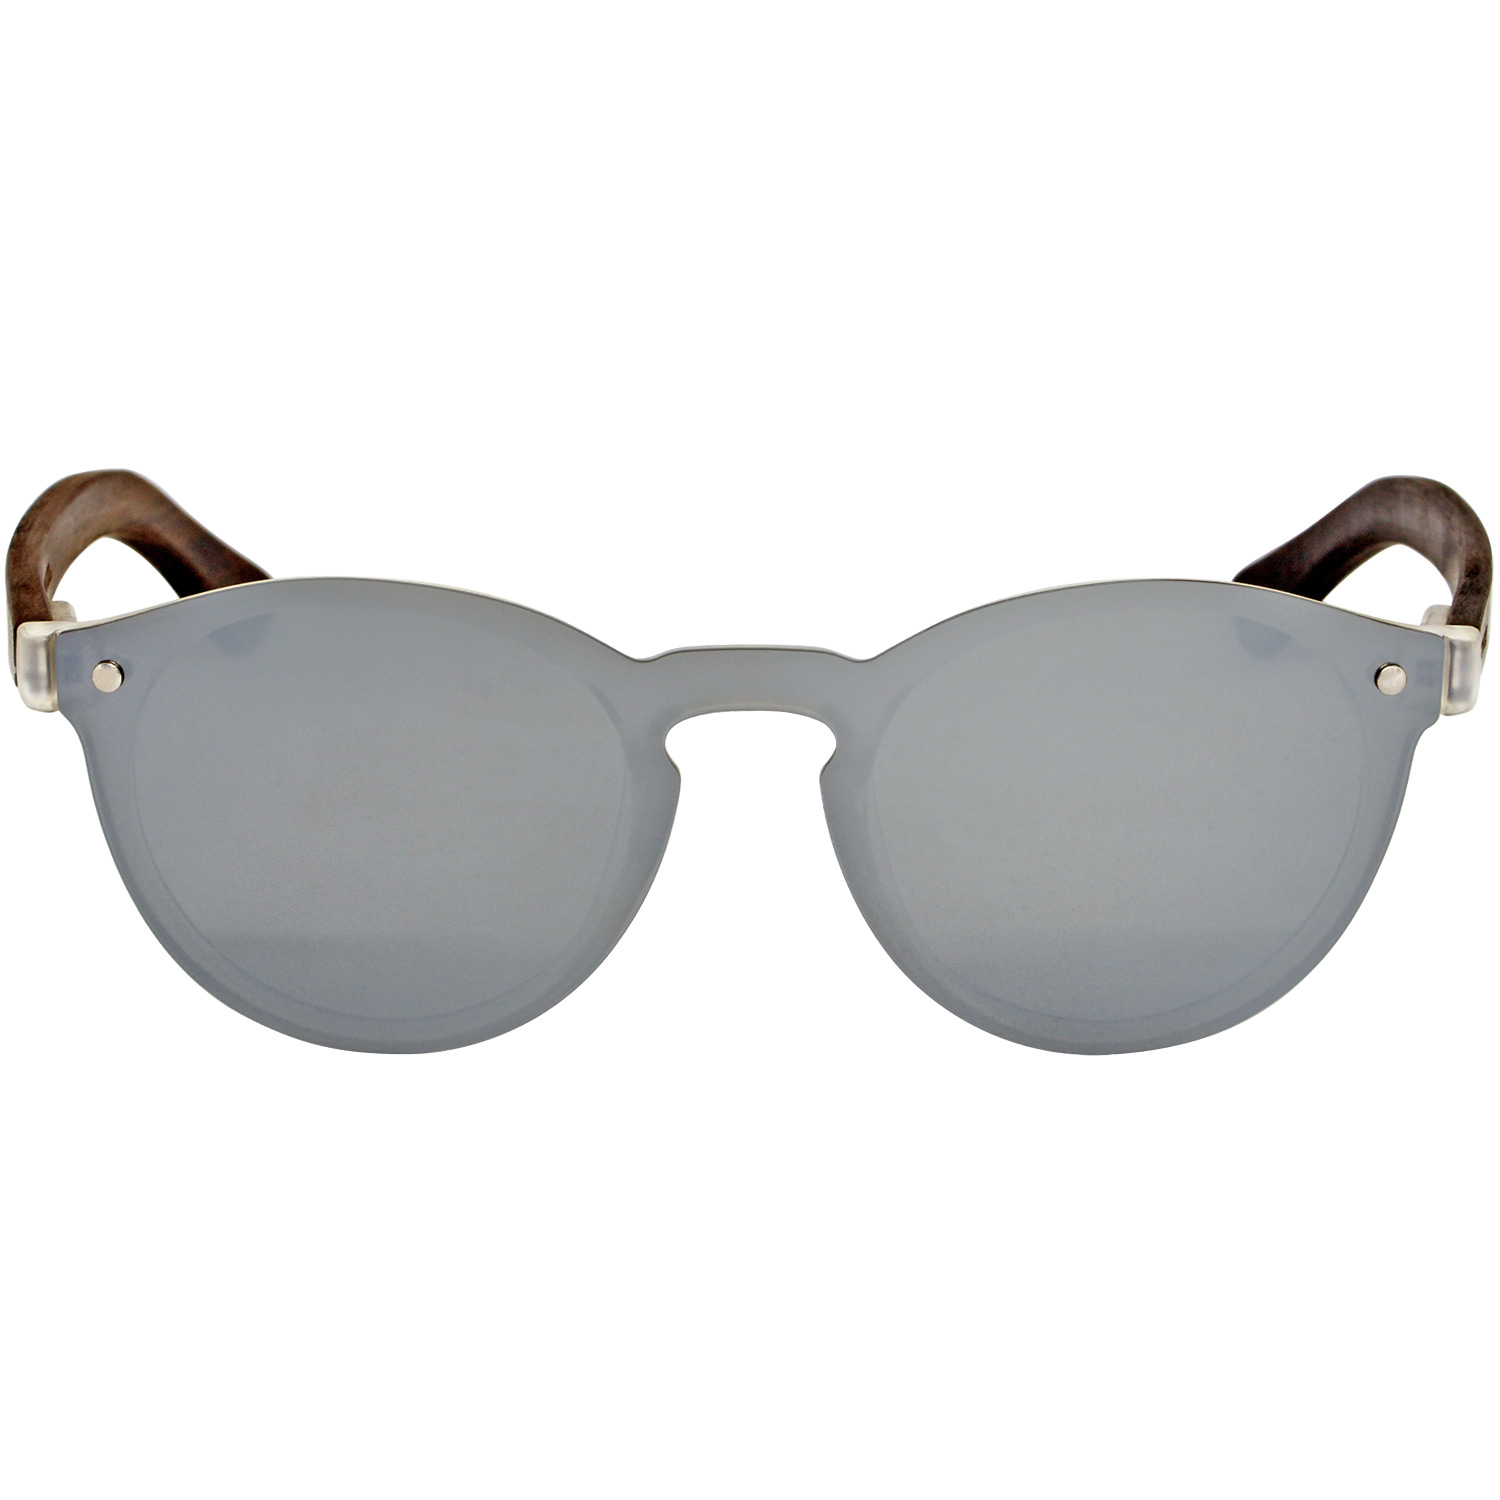 Round ebony wood sunglasses silver mirrored polarized one piece lens front